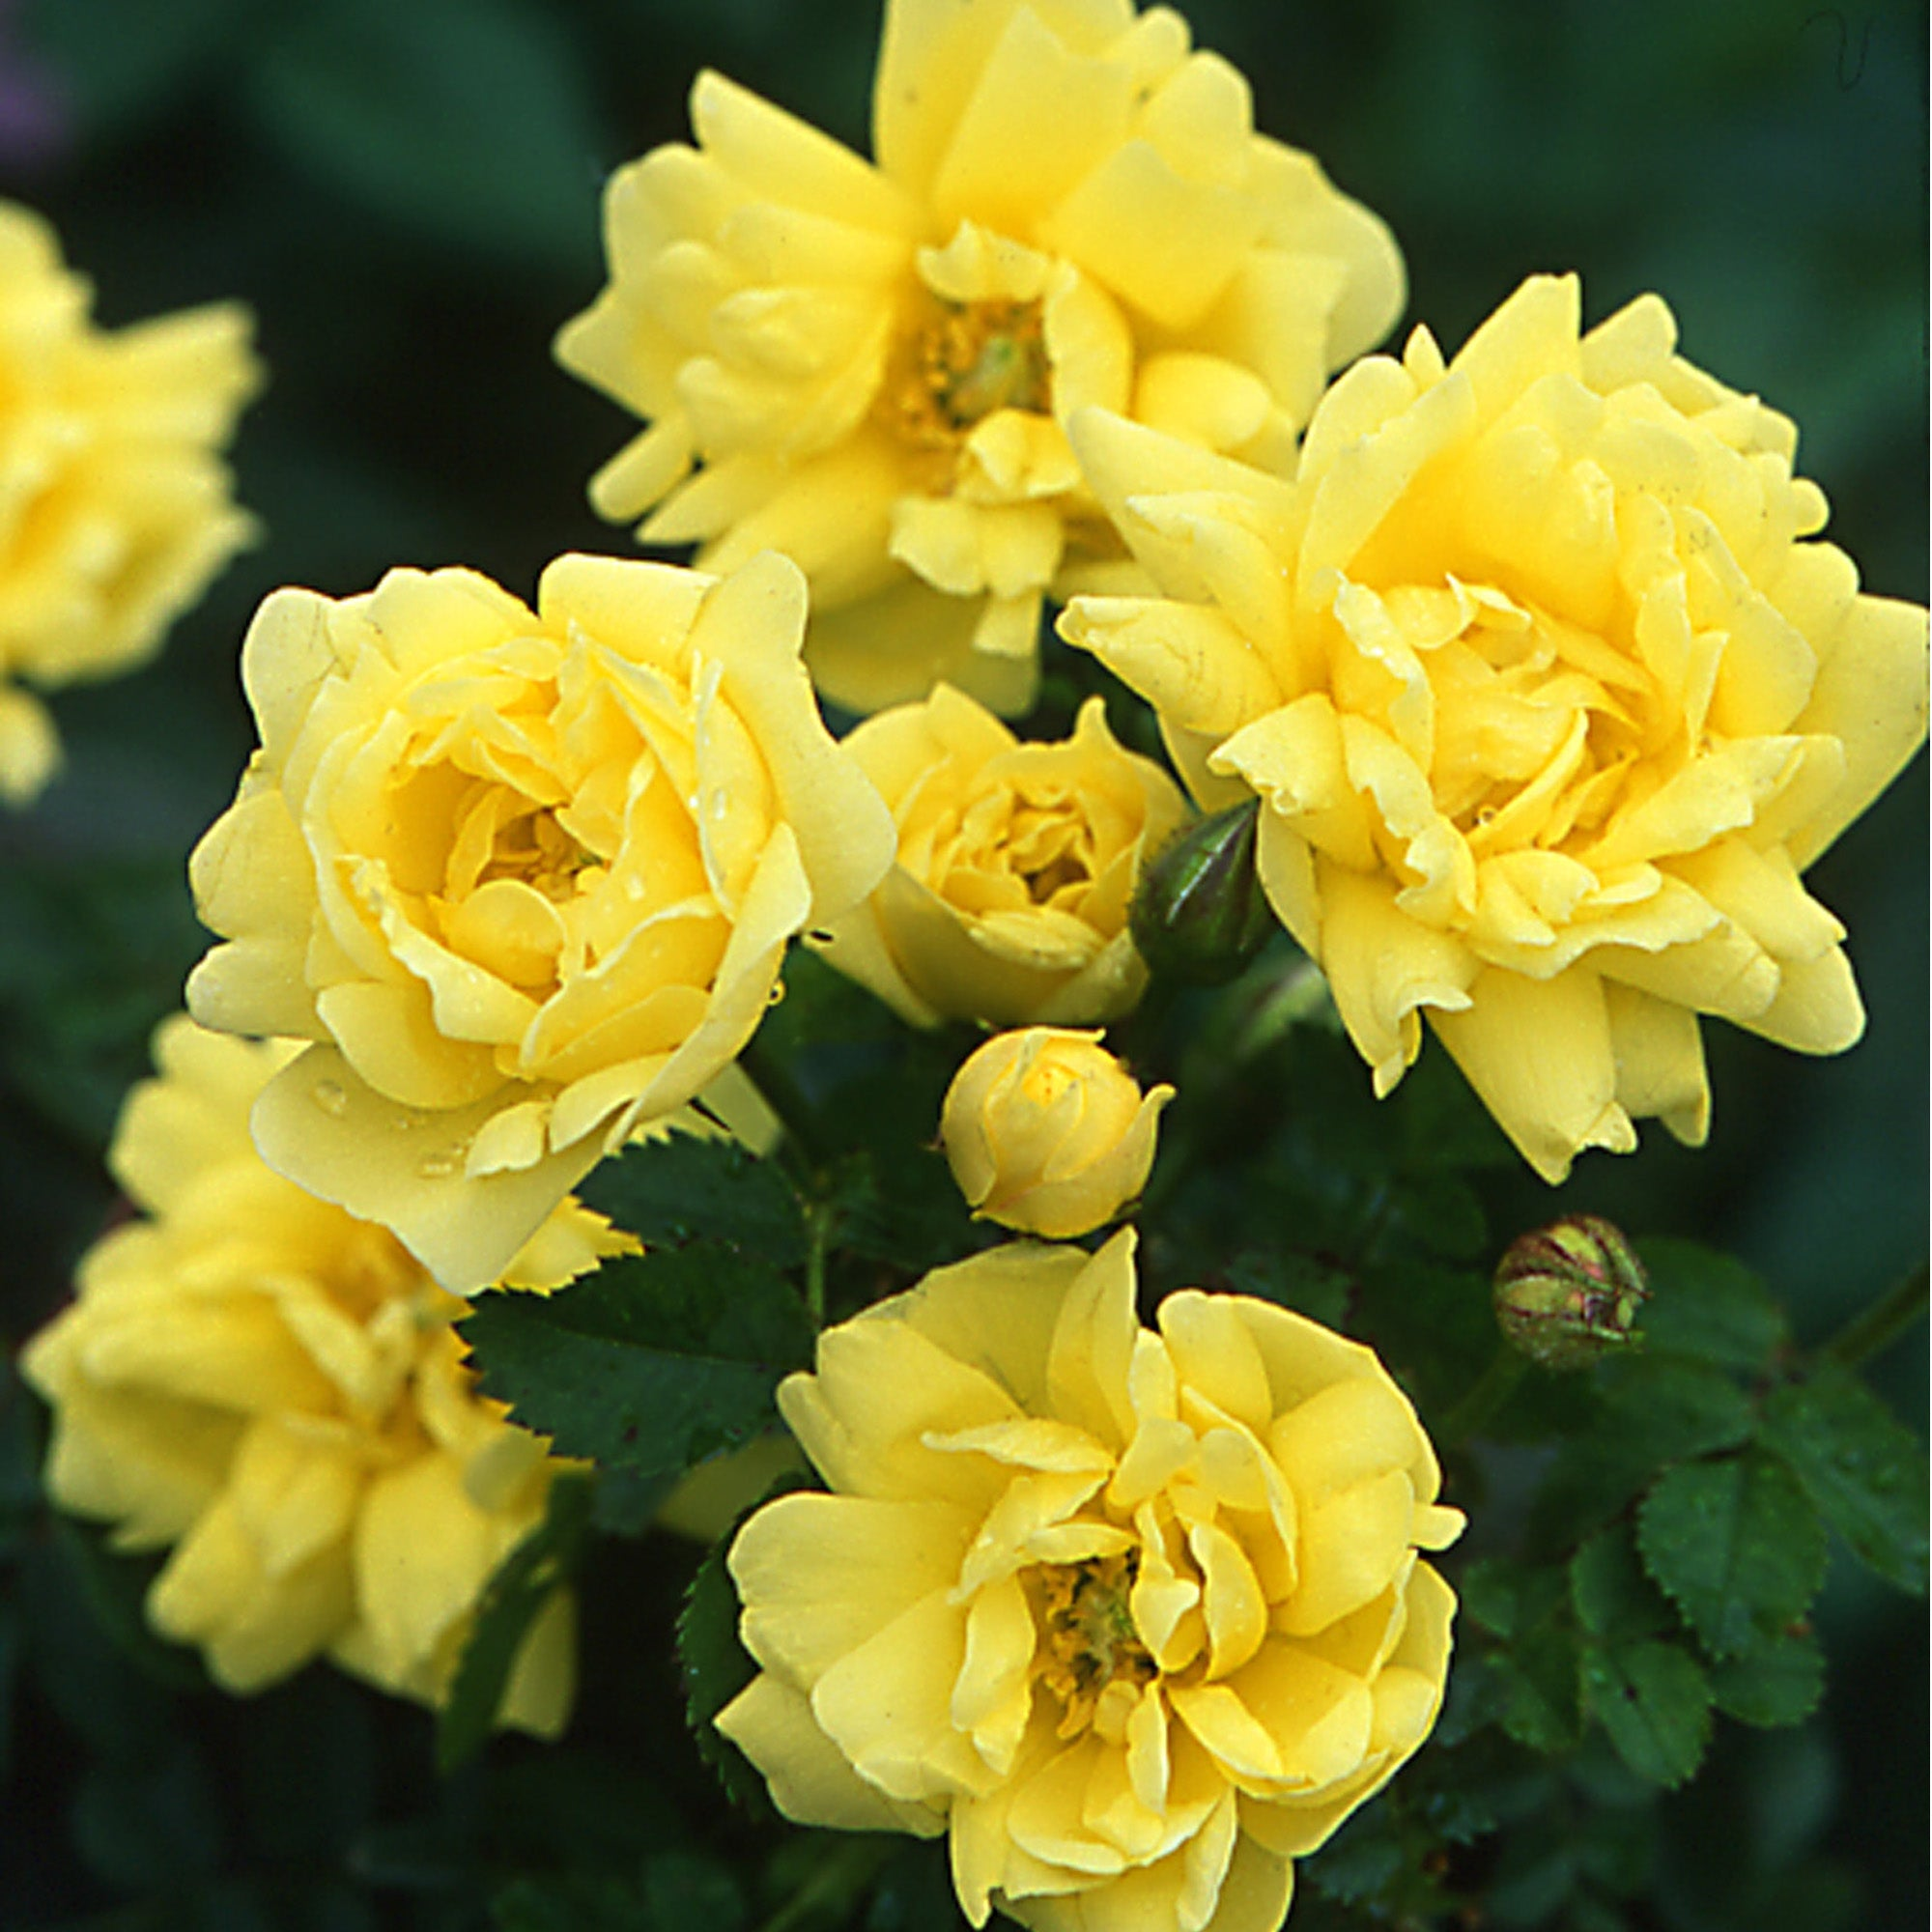 R. spin. 'Williams' Double Yellow'